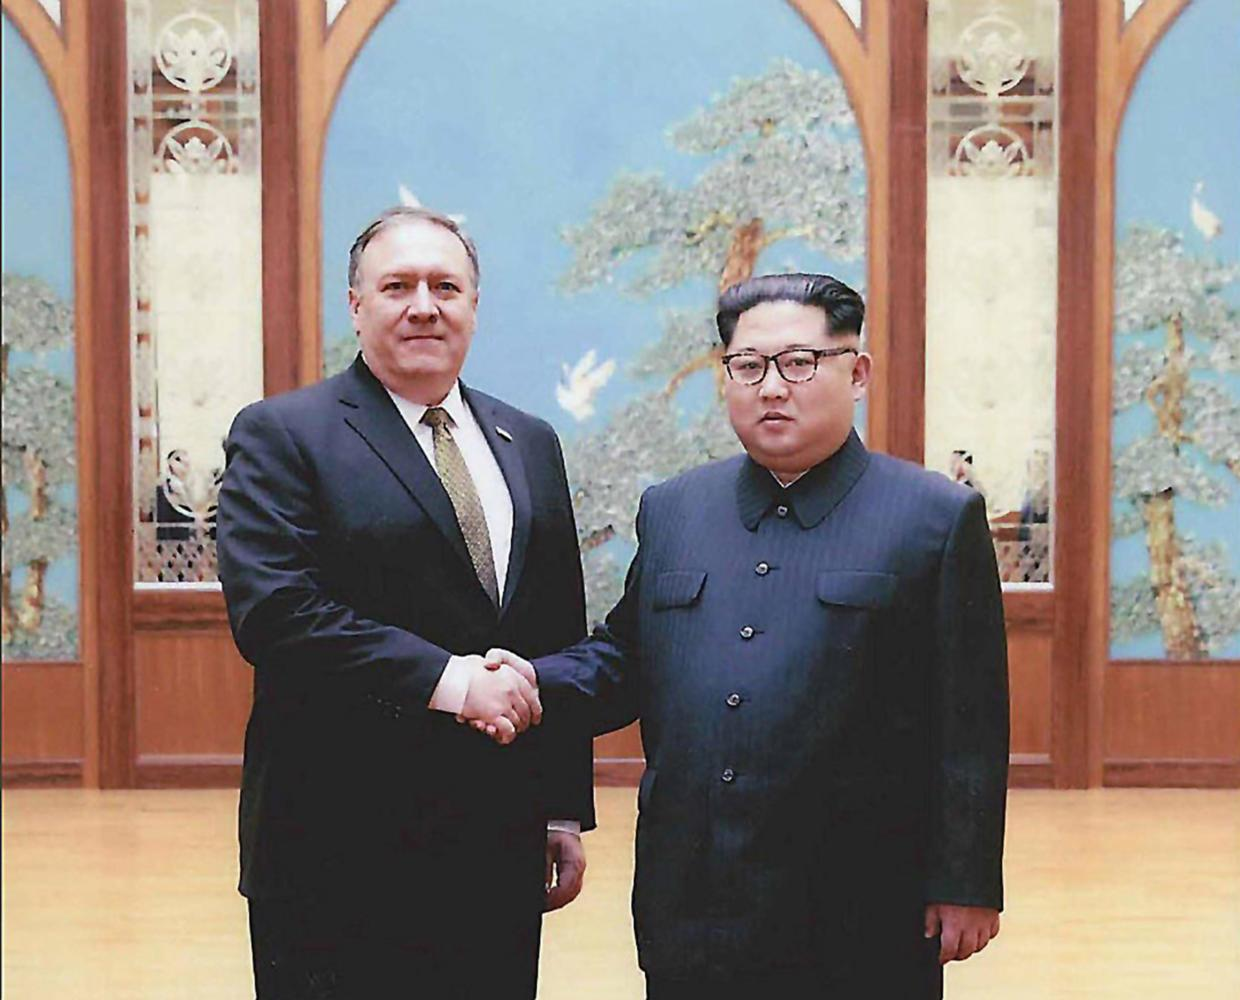 Photos released by the White House of then CIA Director Mike Pompeo, left, meeting North Korean leader Kim Jong Un in Pyongyang over Easter weekend. (White House/Zuma Press/TNS)